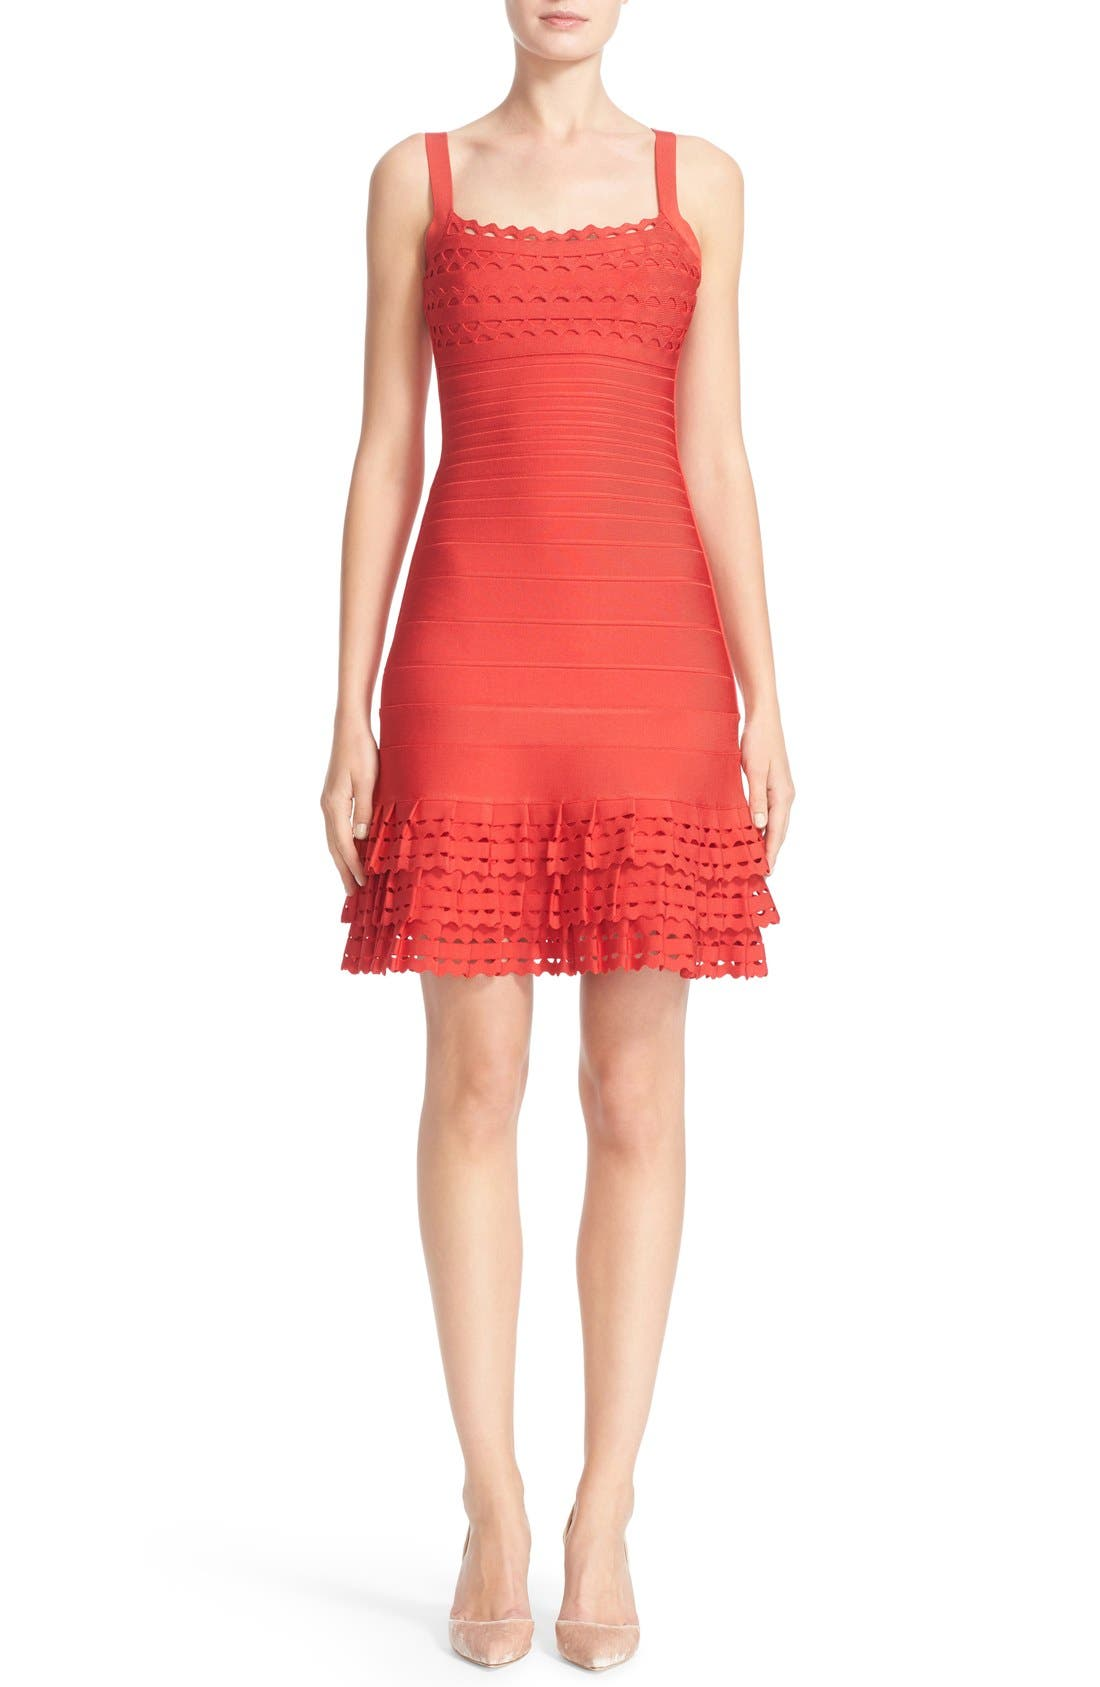 HERVE LEGER Laser Cut Ruffle Hem Bandage Dress